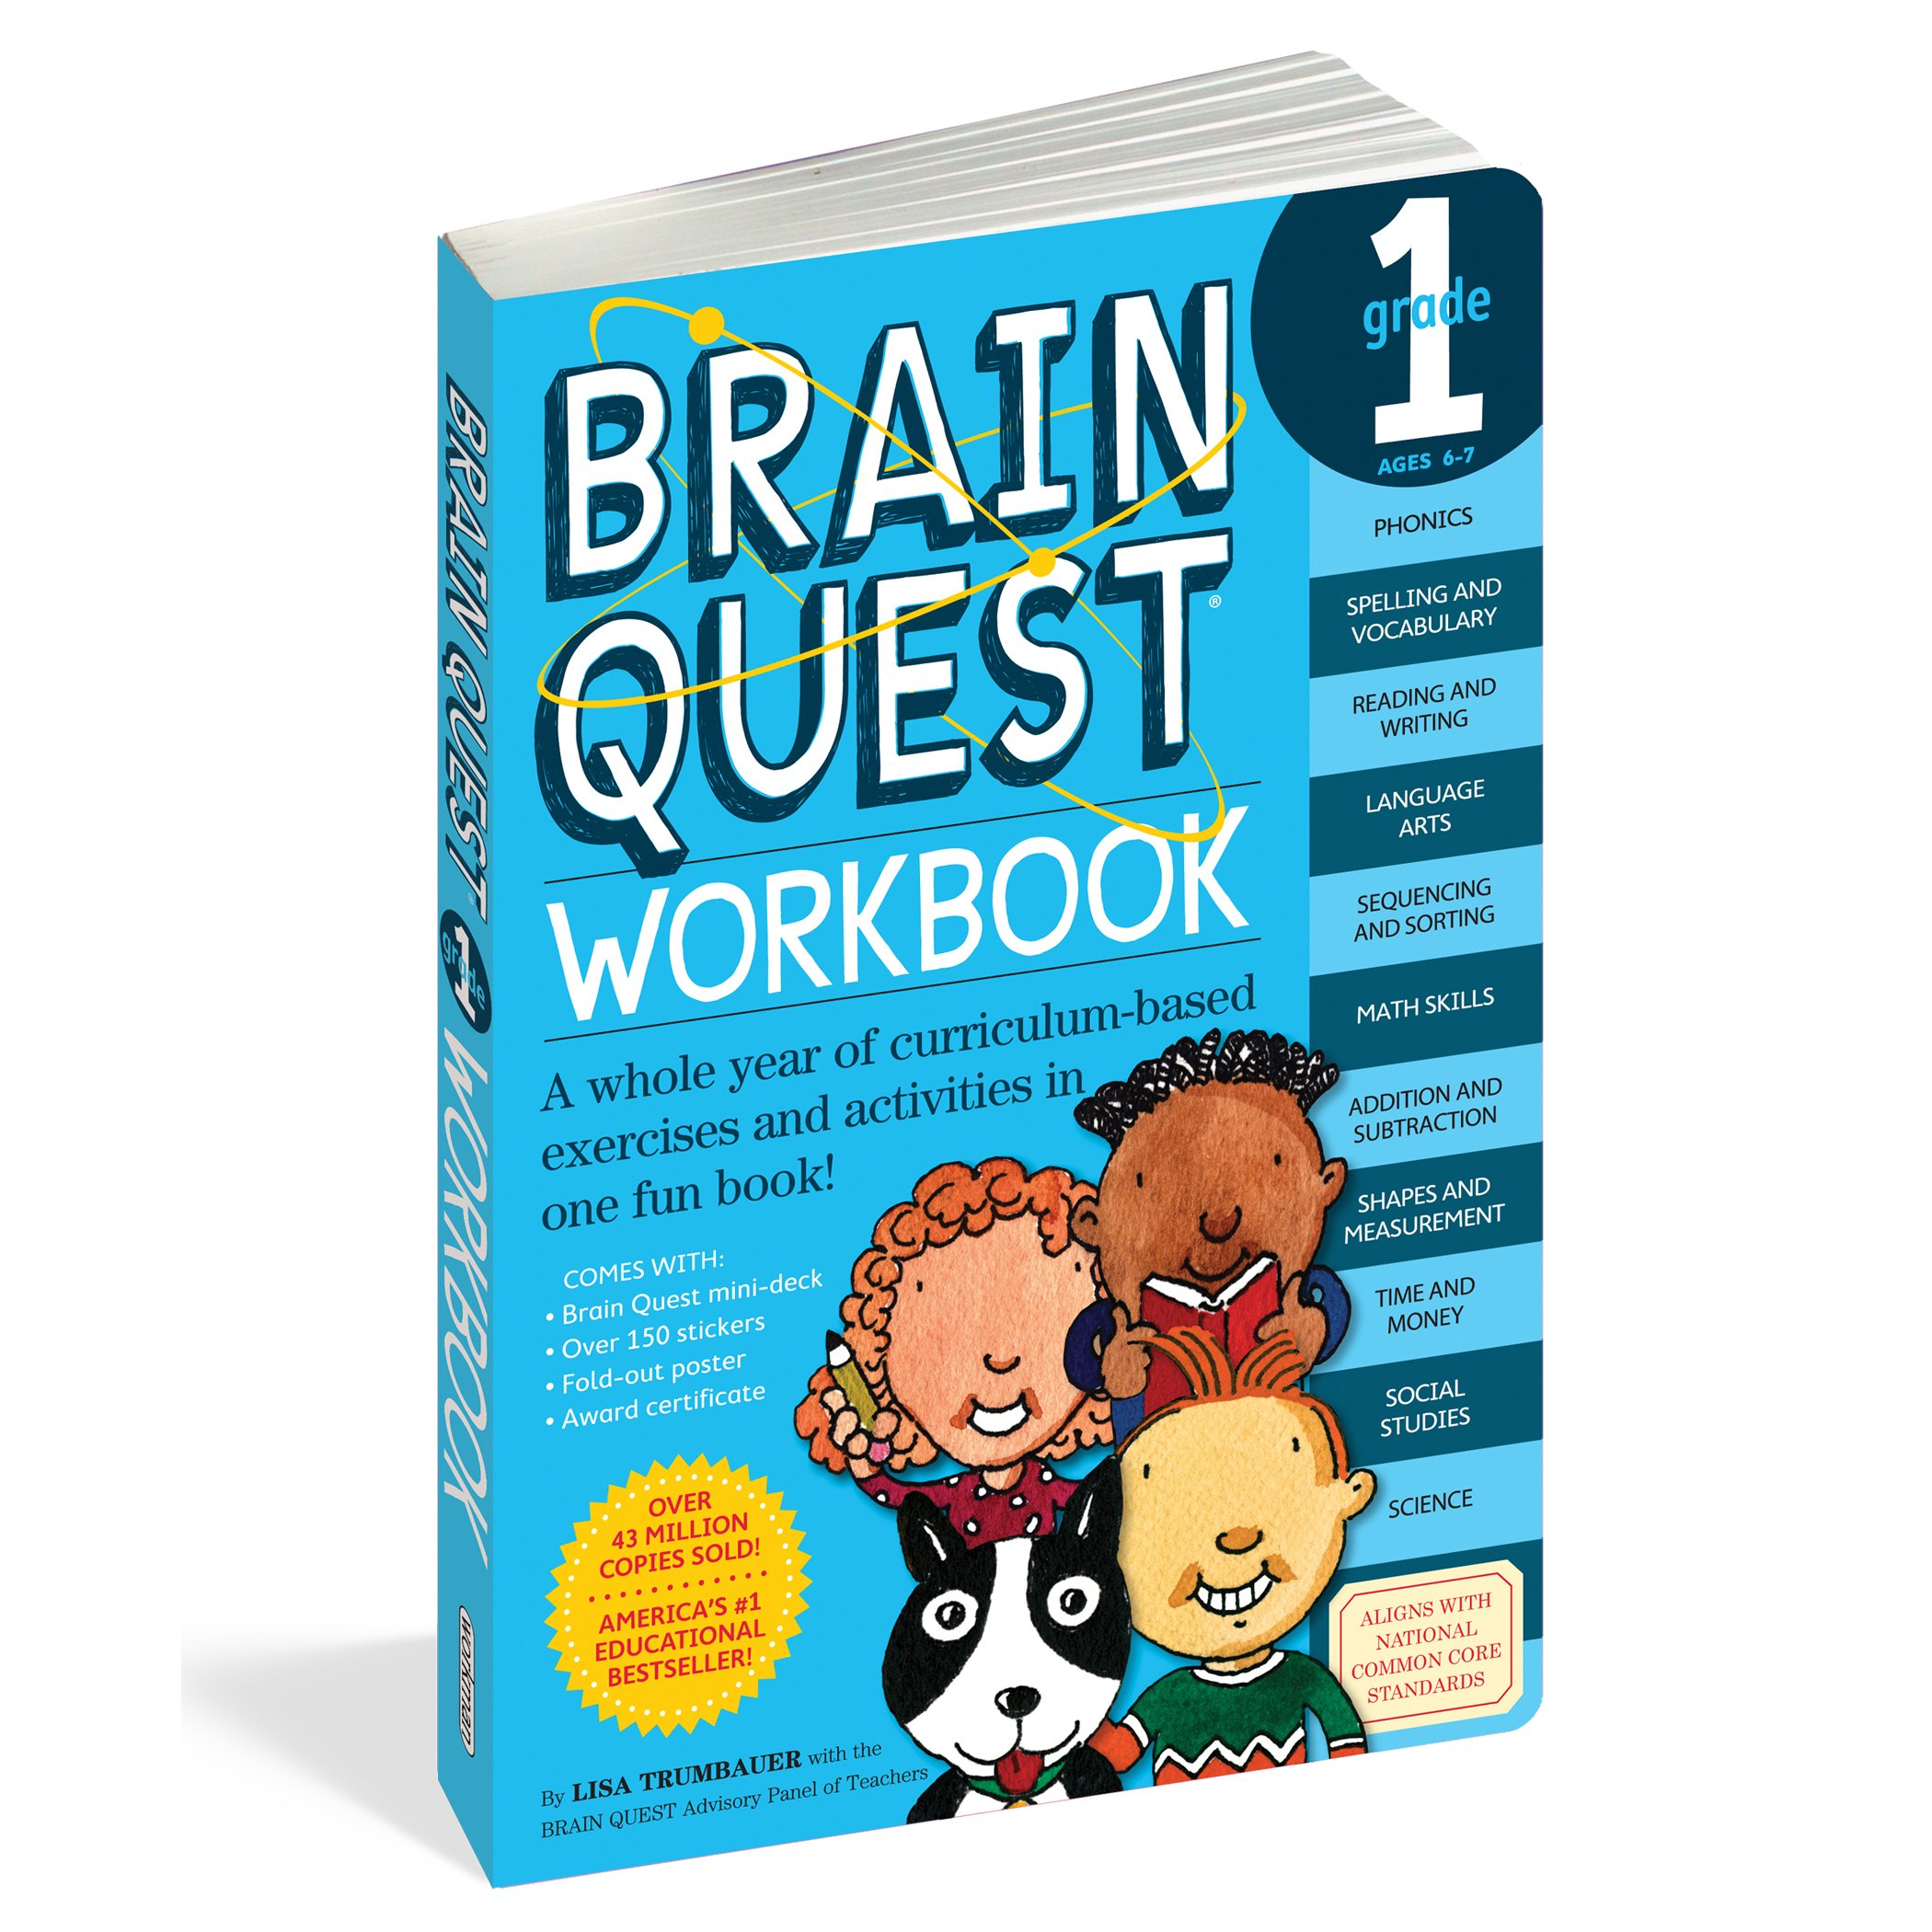 Brain Quest Workbook: Grade 1: Lisa Trumbauer: 9780761149149: Amazon ...